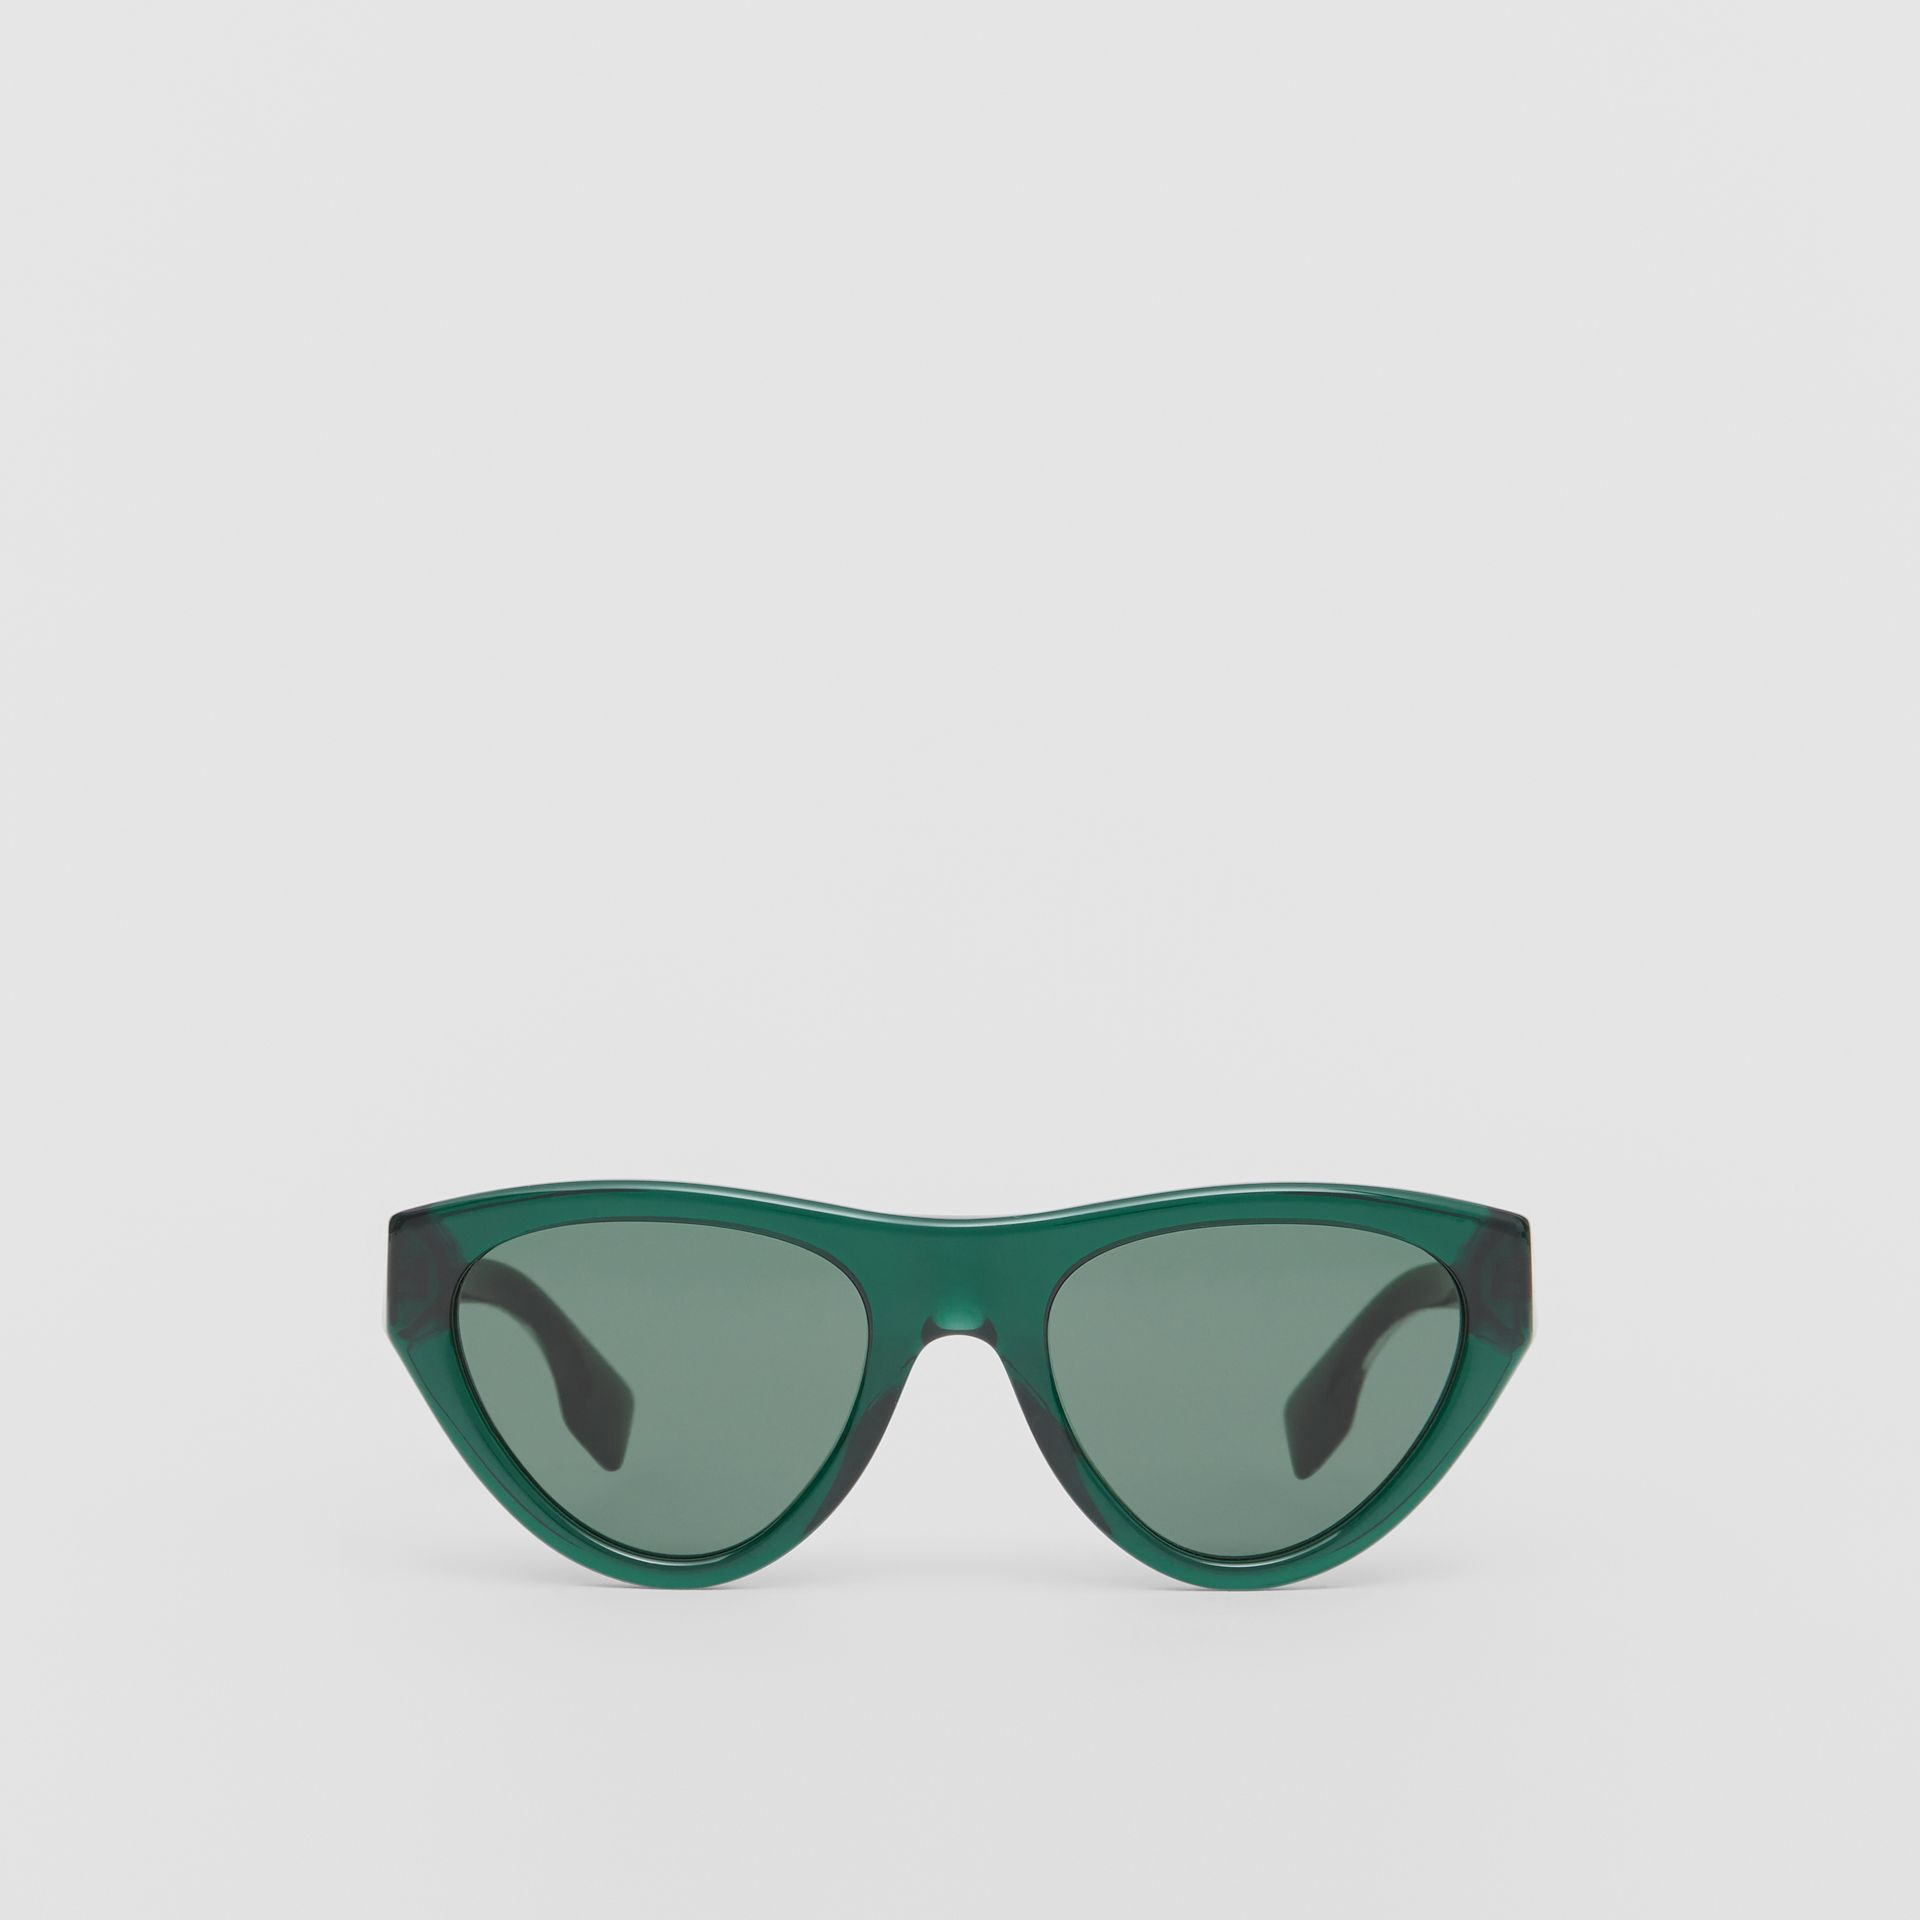 Triangular Frame Sunglasses in Green - Women | Burberry United Kingdom - gallery image 0